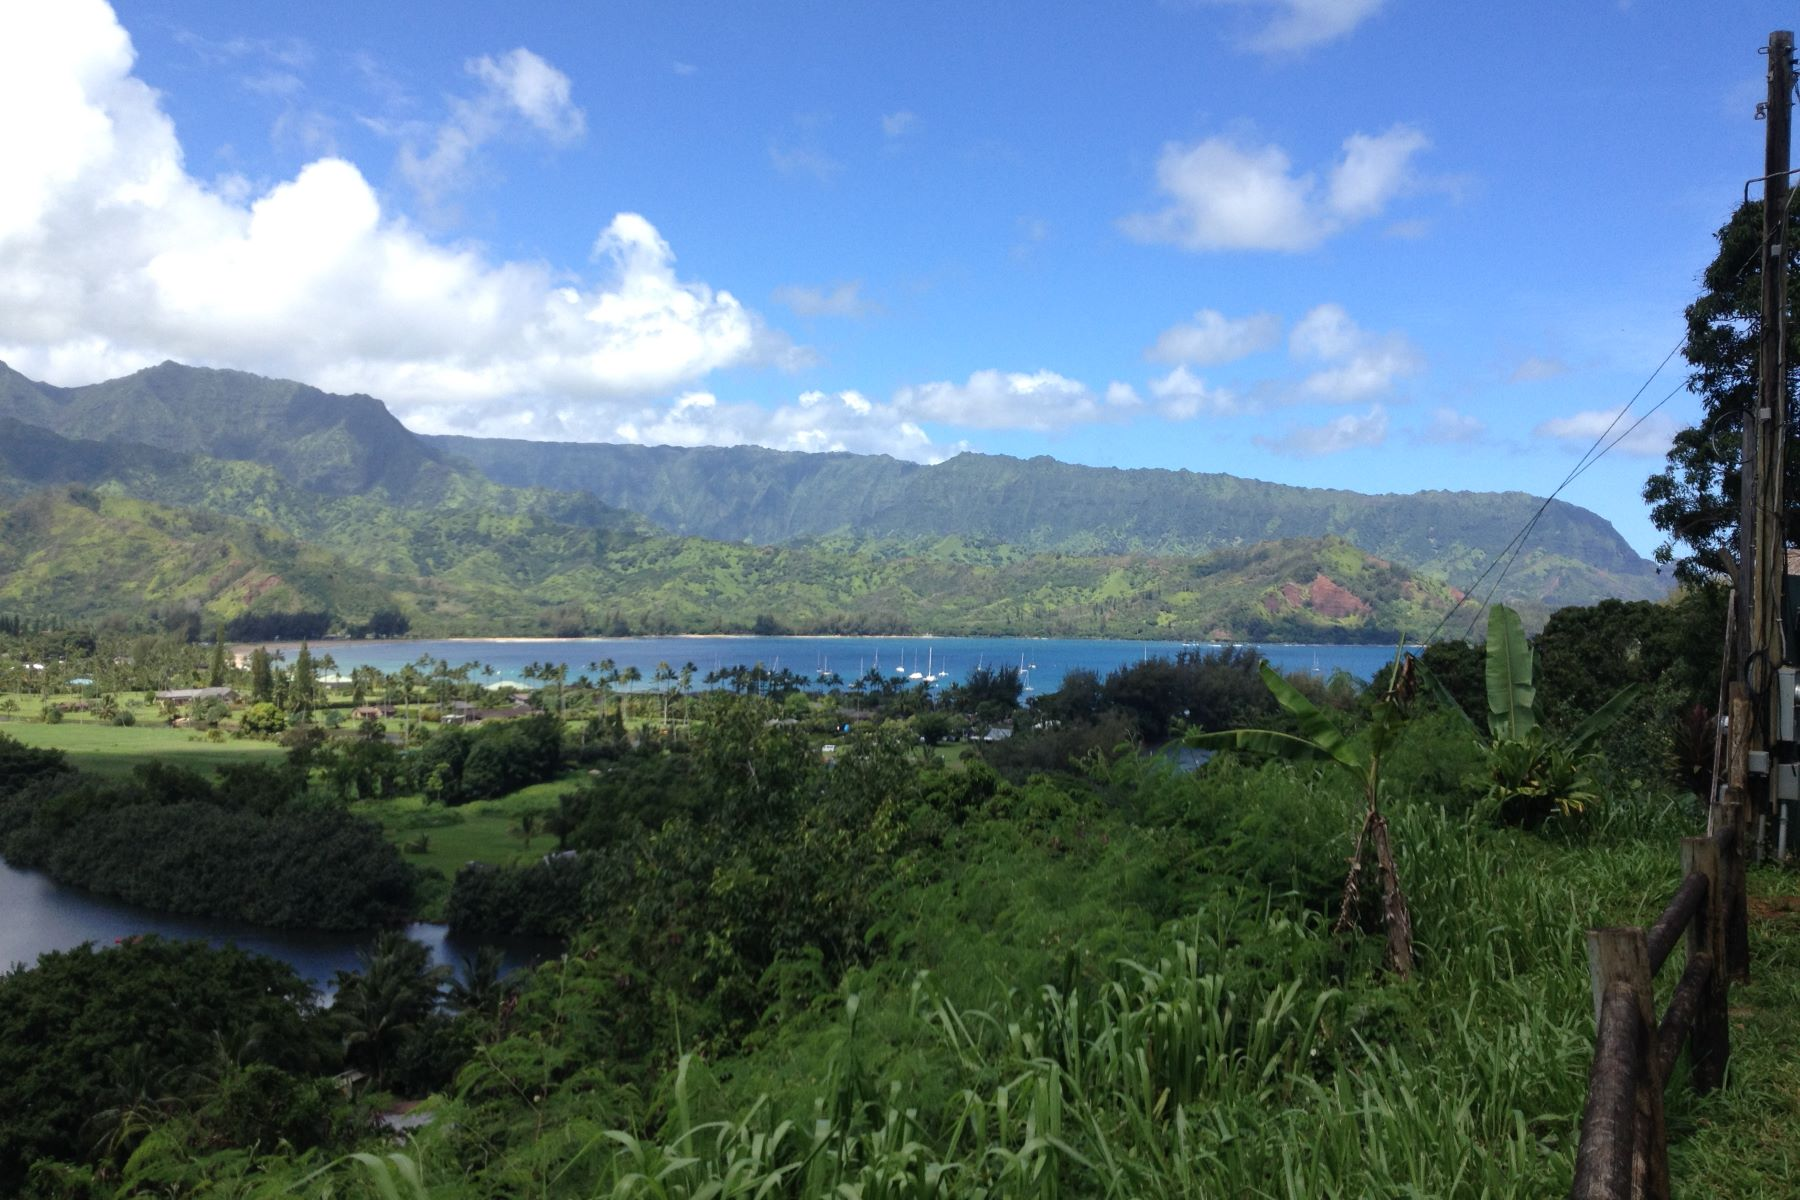 Single Family Home for Sale at Views! Views! Views! 5219 Hanalei Plantation Road Hanalei, Hawaii 96714 United States